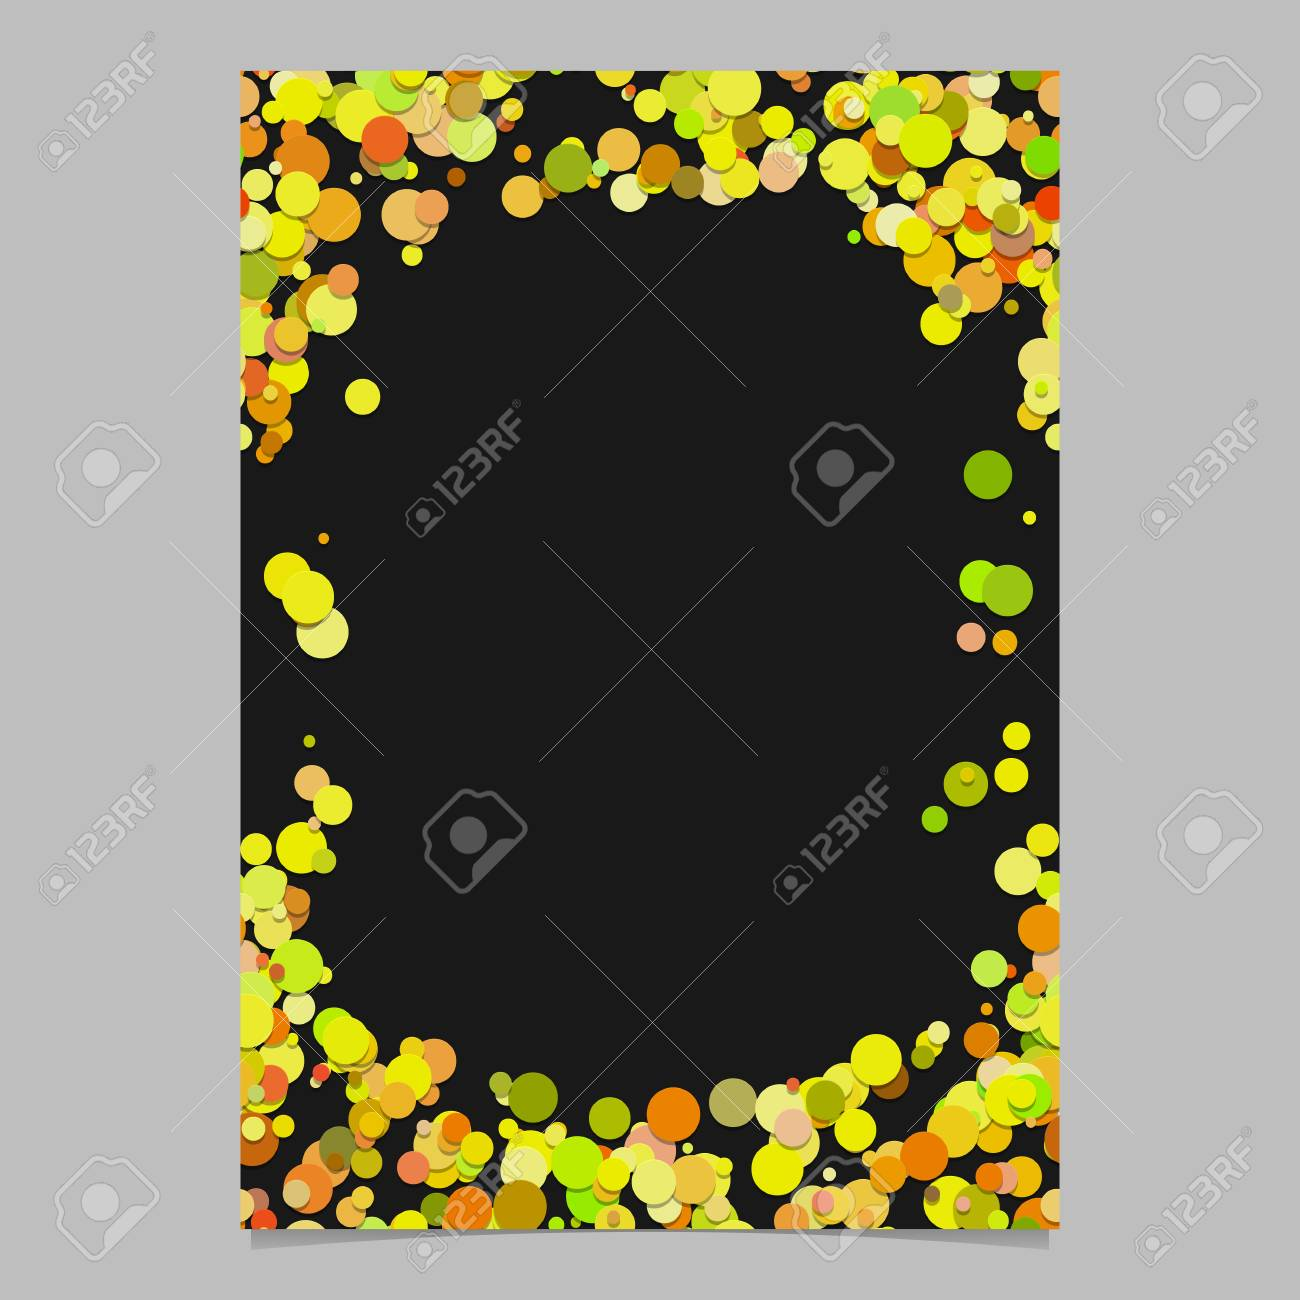 color abstract random dot pattern card background template